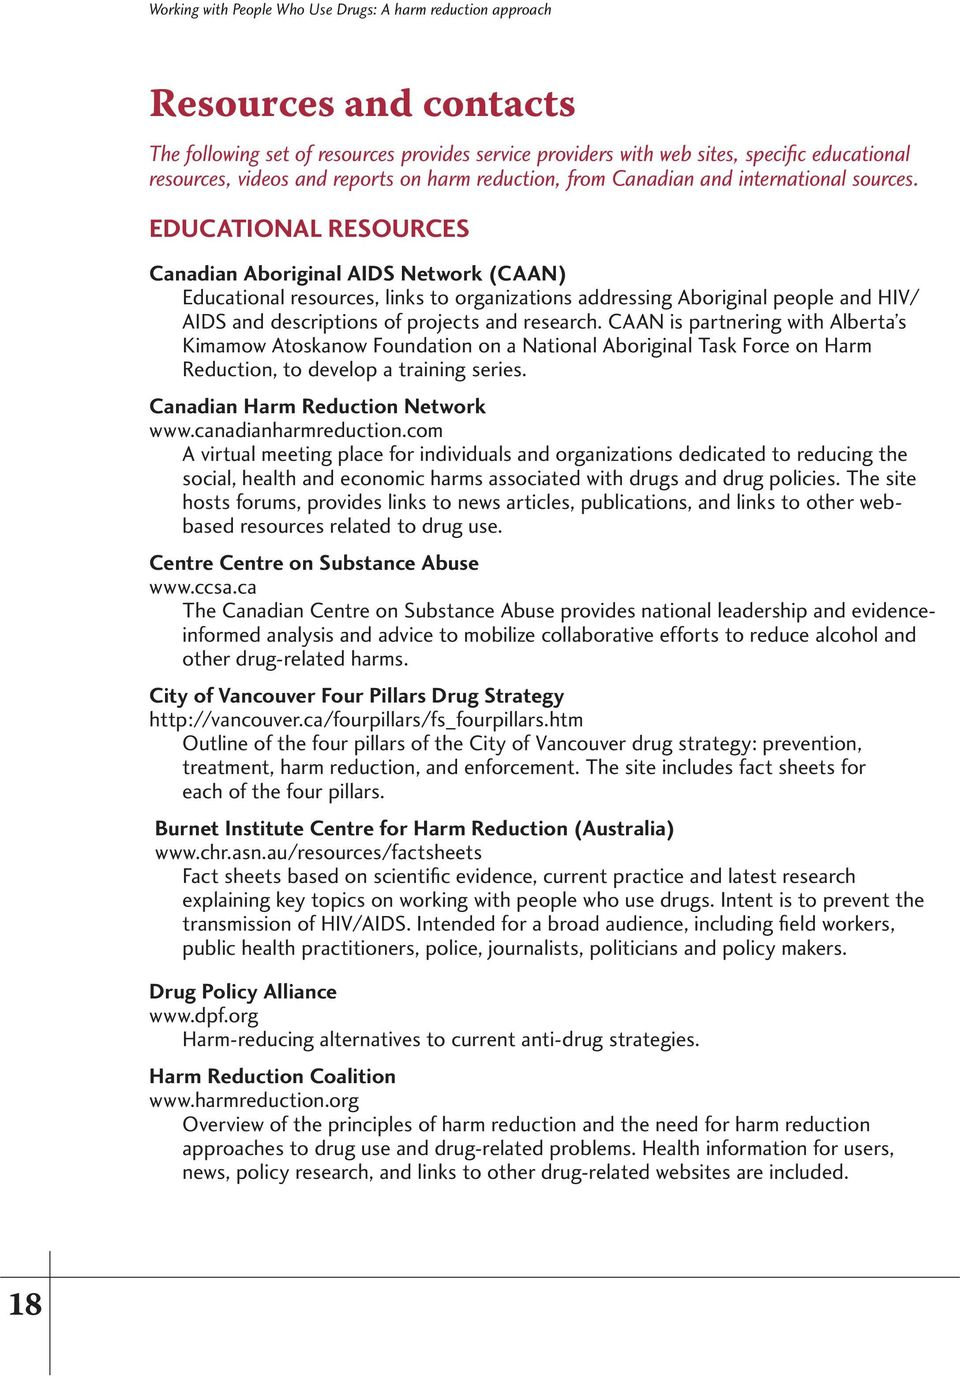 Educational resources Canadian Aboriginal AIDS Network (CAAN) Educational resources, links to organizations addressing Aboriginal people and HIV/ AIDS and descriptions of projects and research.